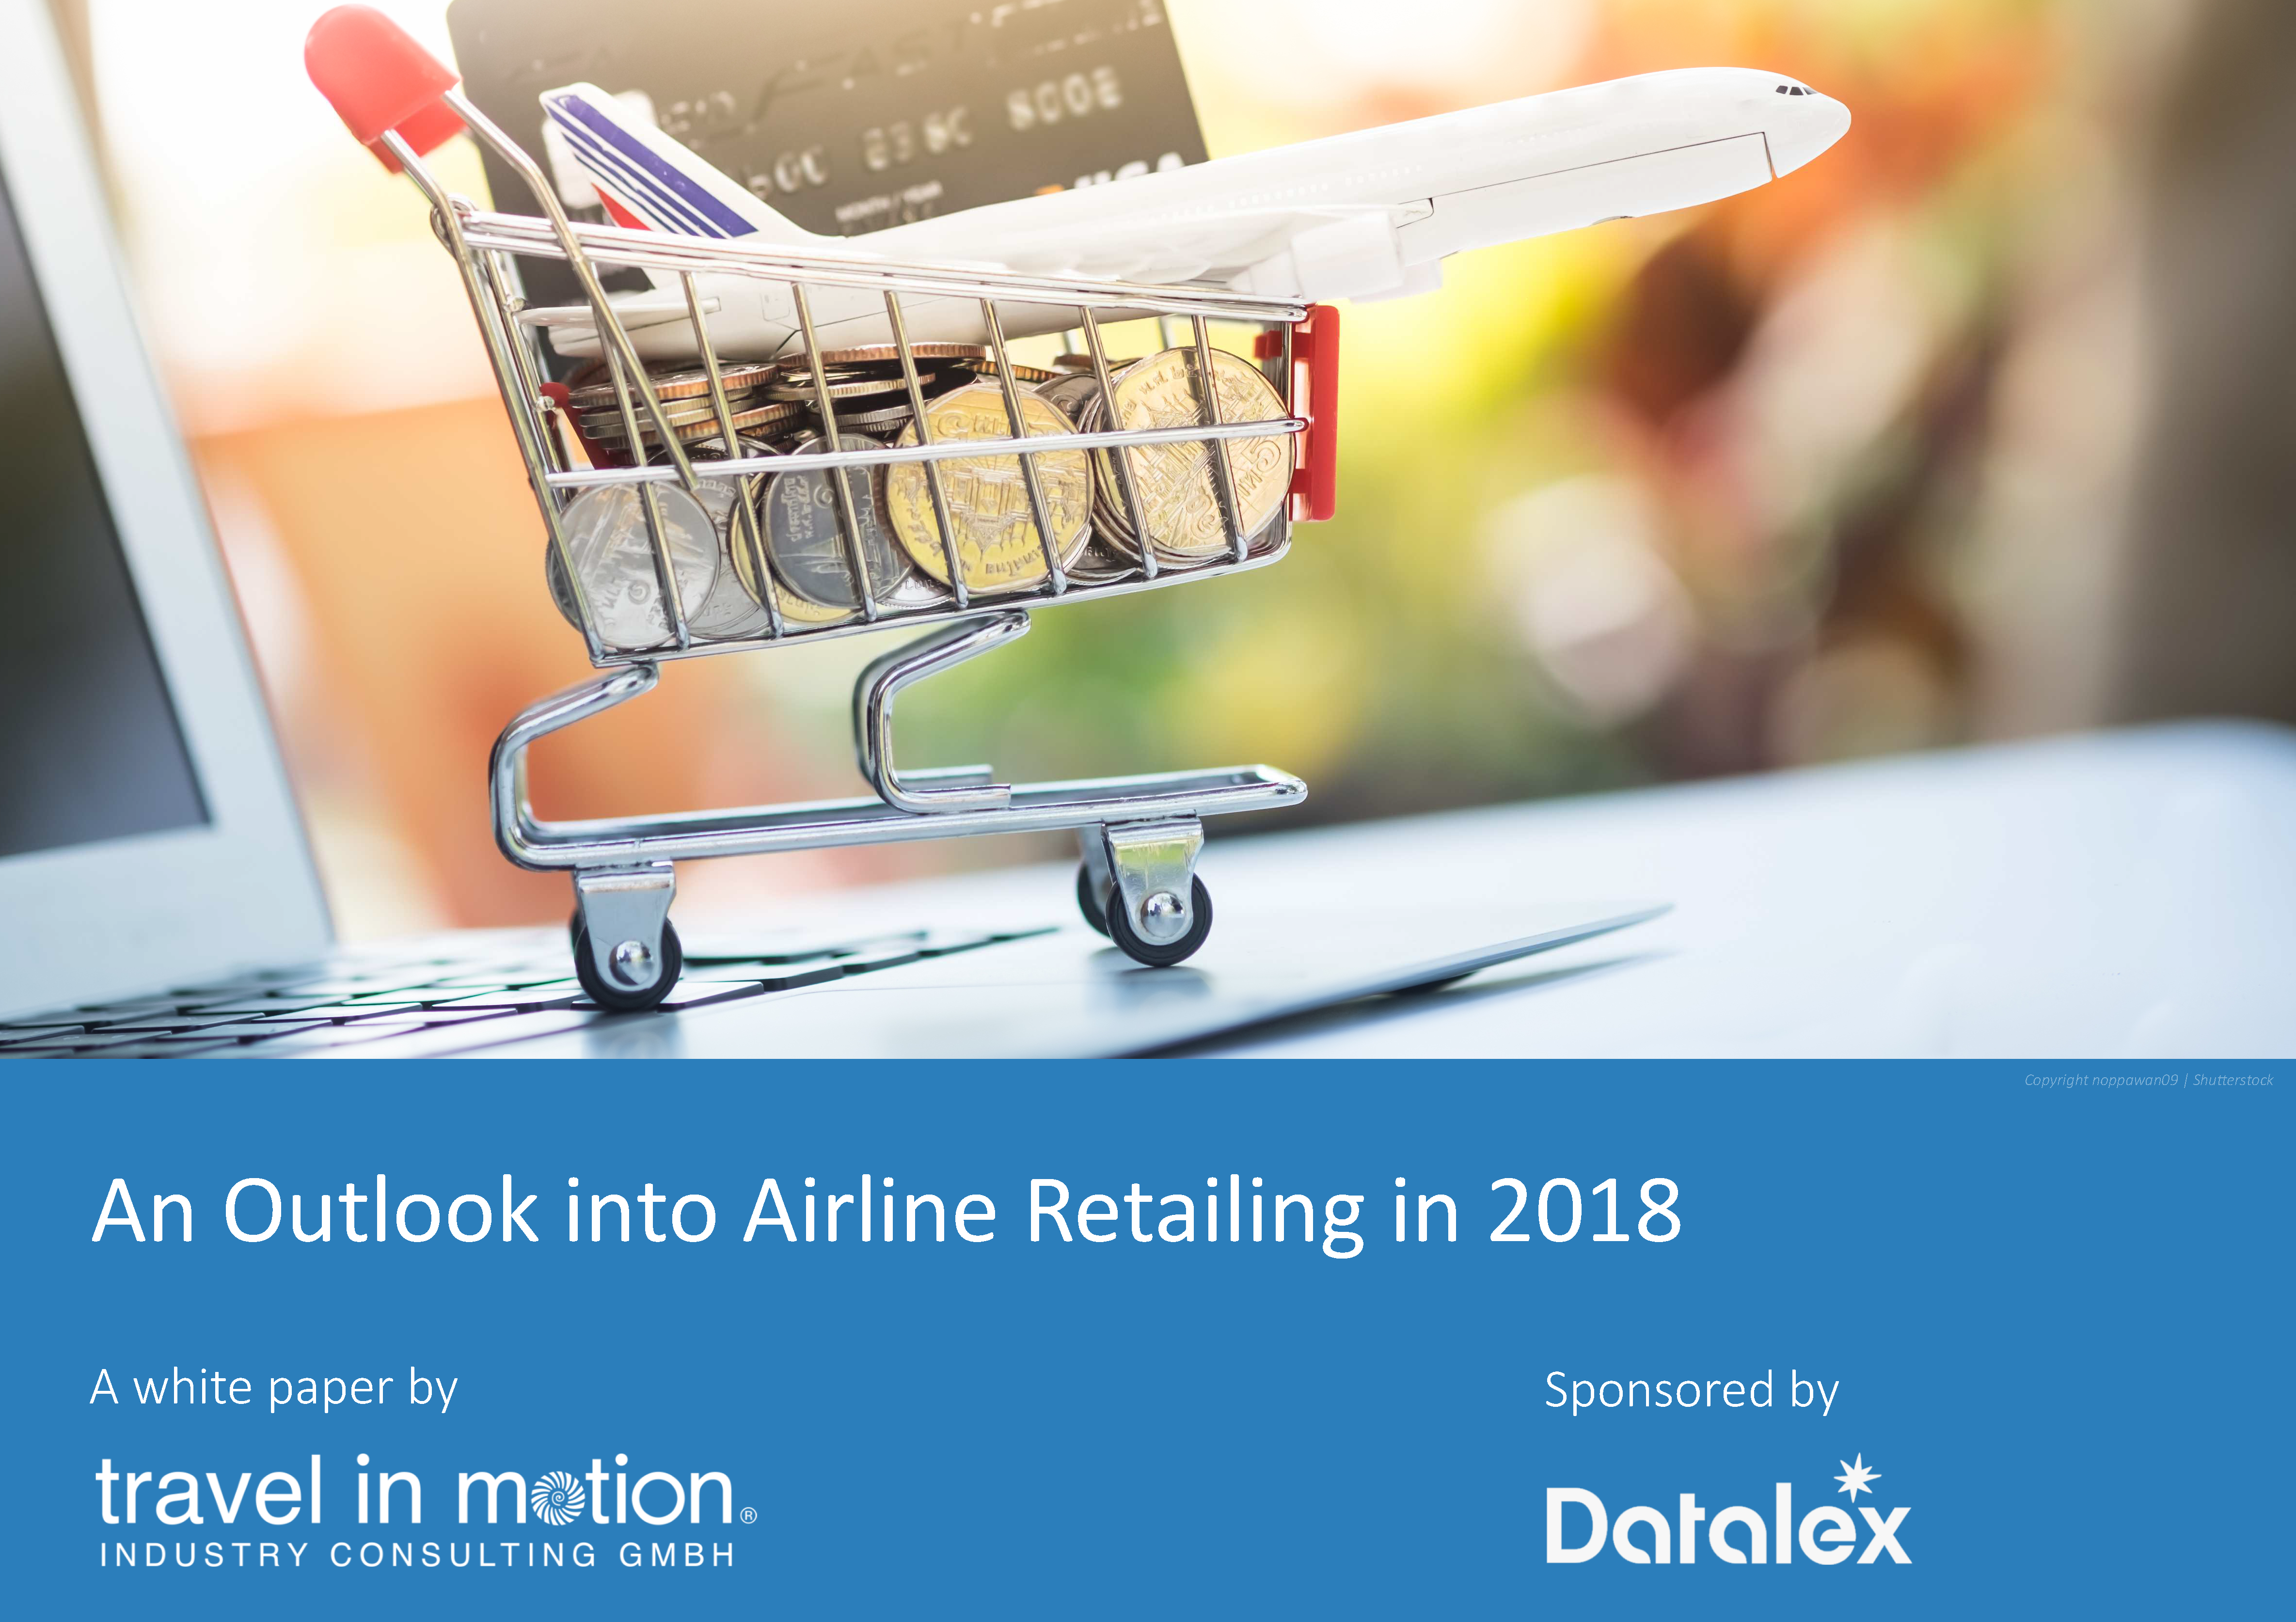 Airline Retailing Outlook 2018